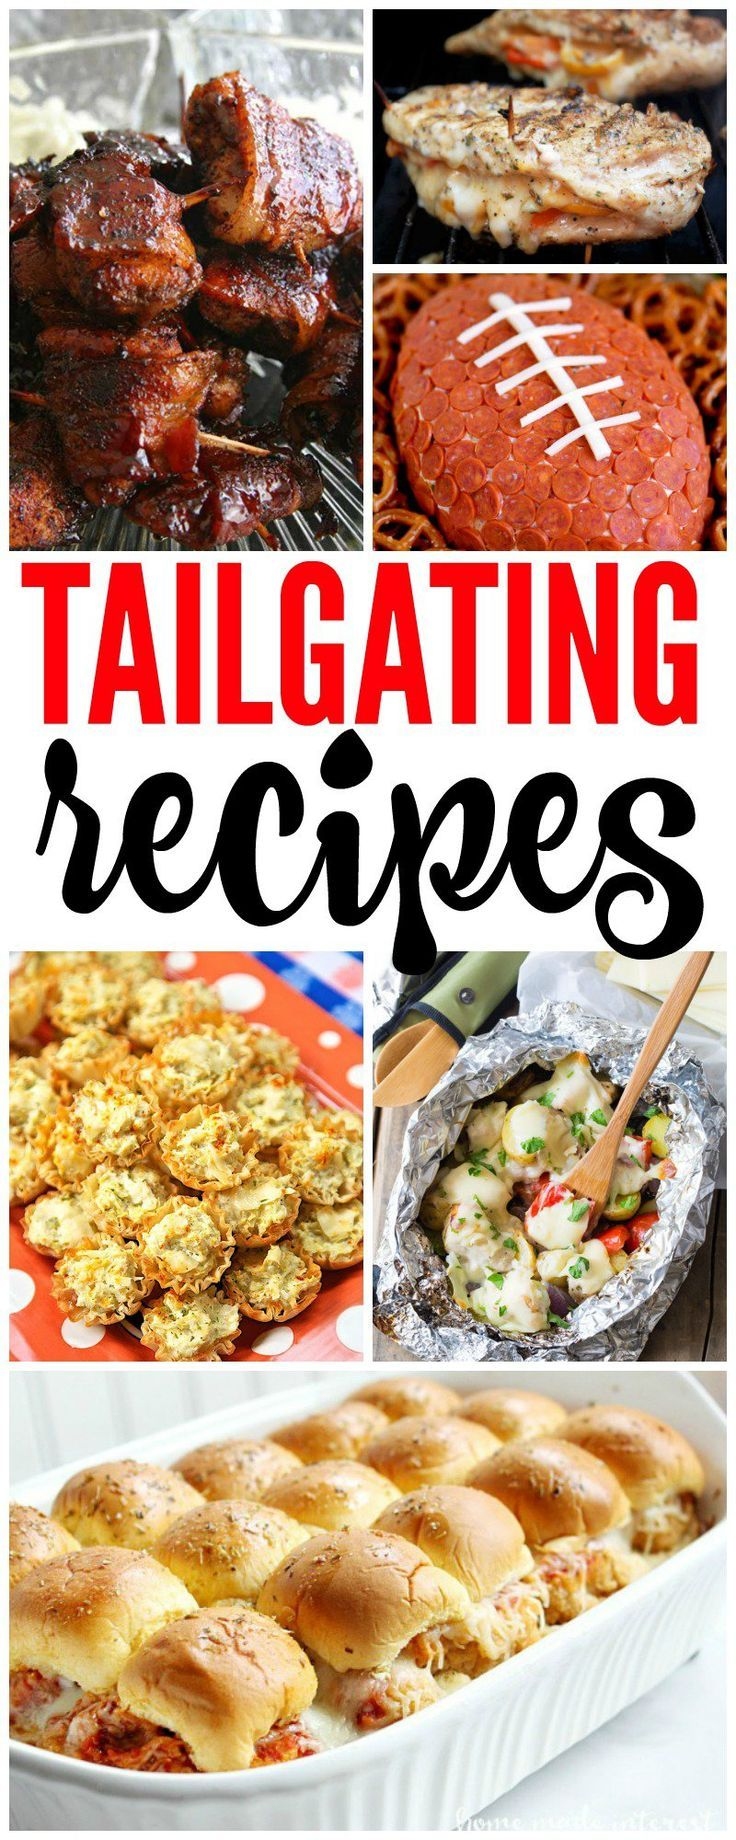 Tailgating Recipes! The best bite-sized recipes for Football Season!